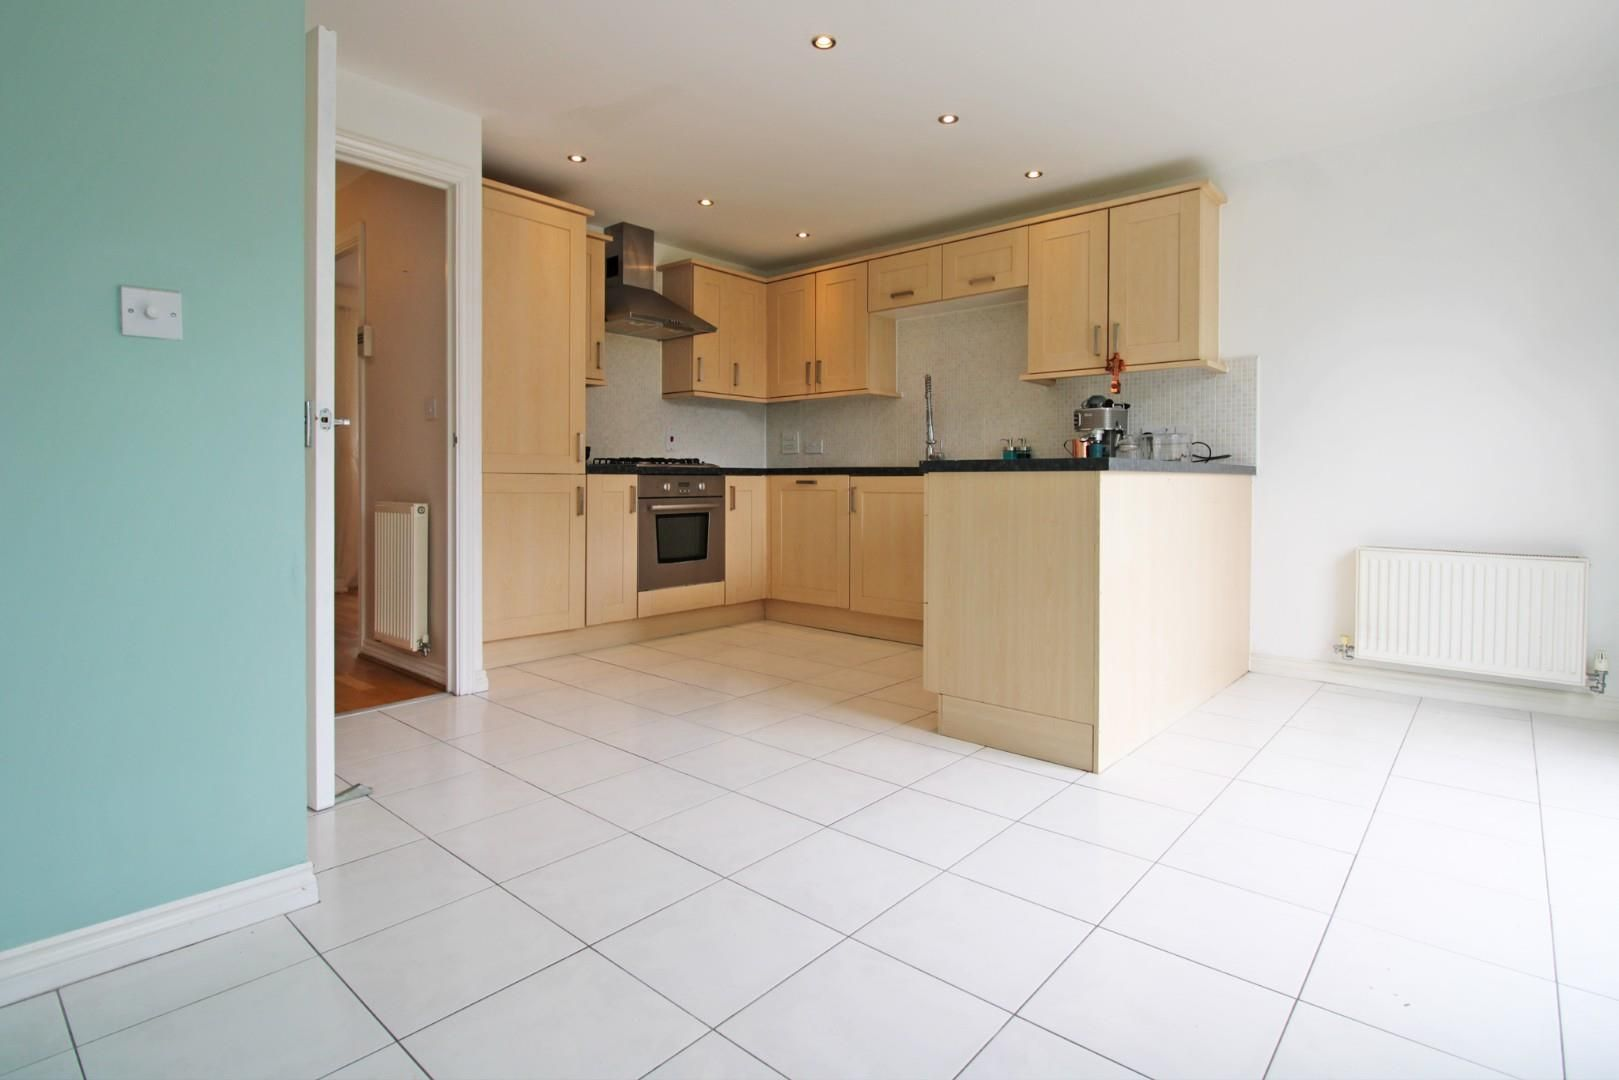 3 bed end of terrace to rent in Shinfield  - Property Image 3